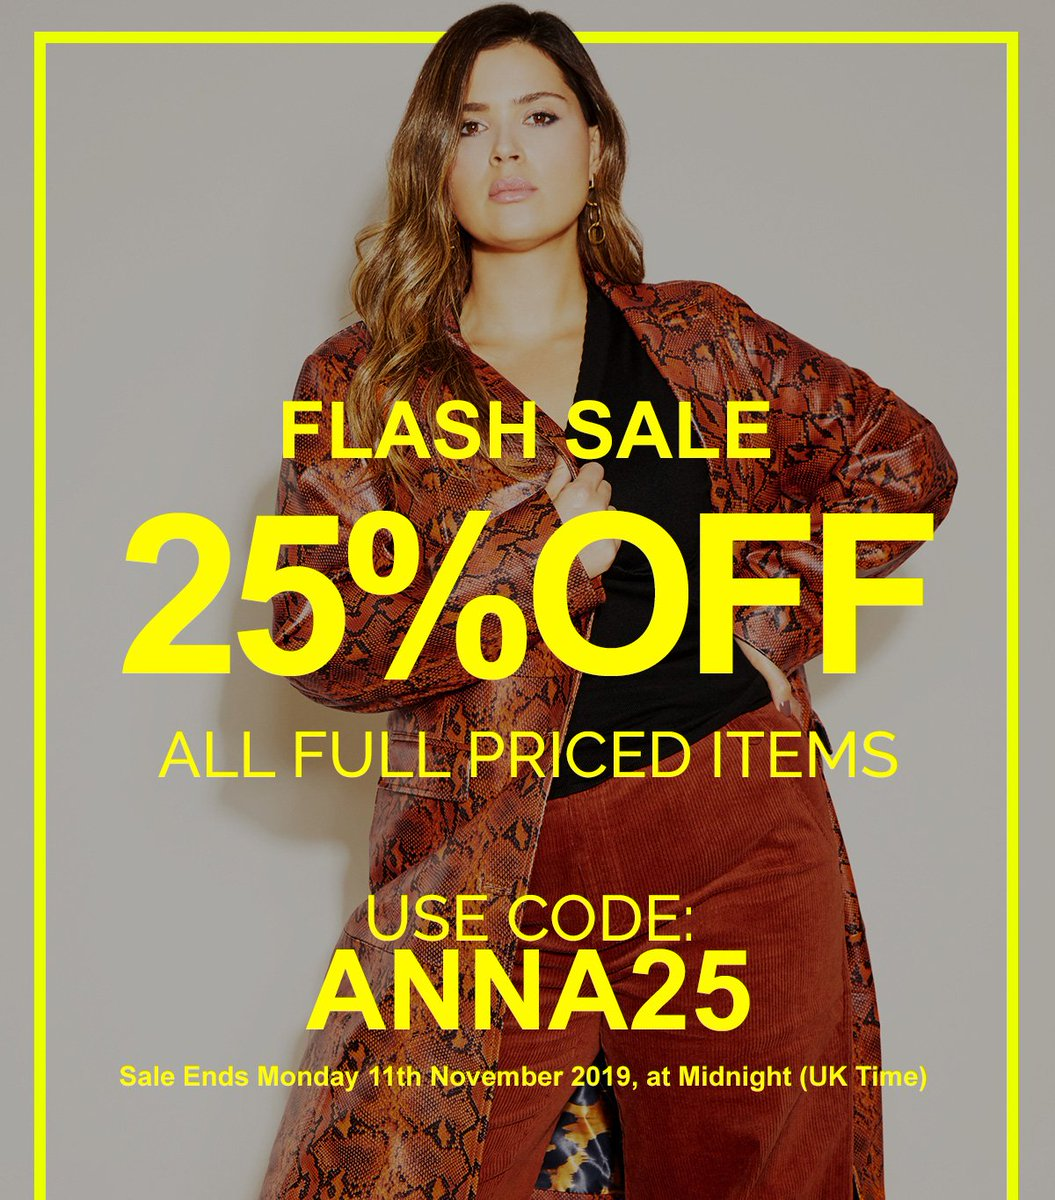 test Twitter Media - Treat! 25%Off Flash sale at https://t.co/0by22NXIST https://t.co/6CcaYtXl3W